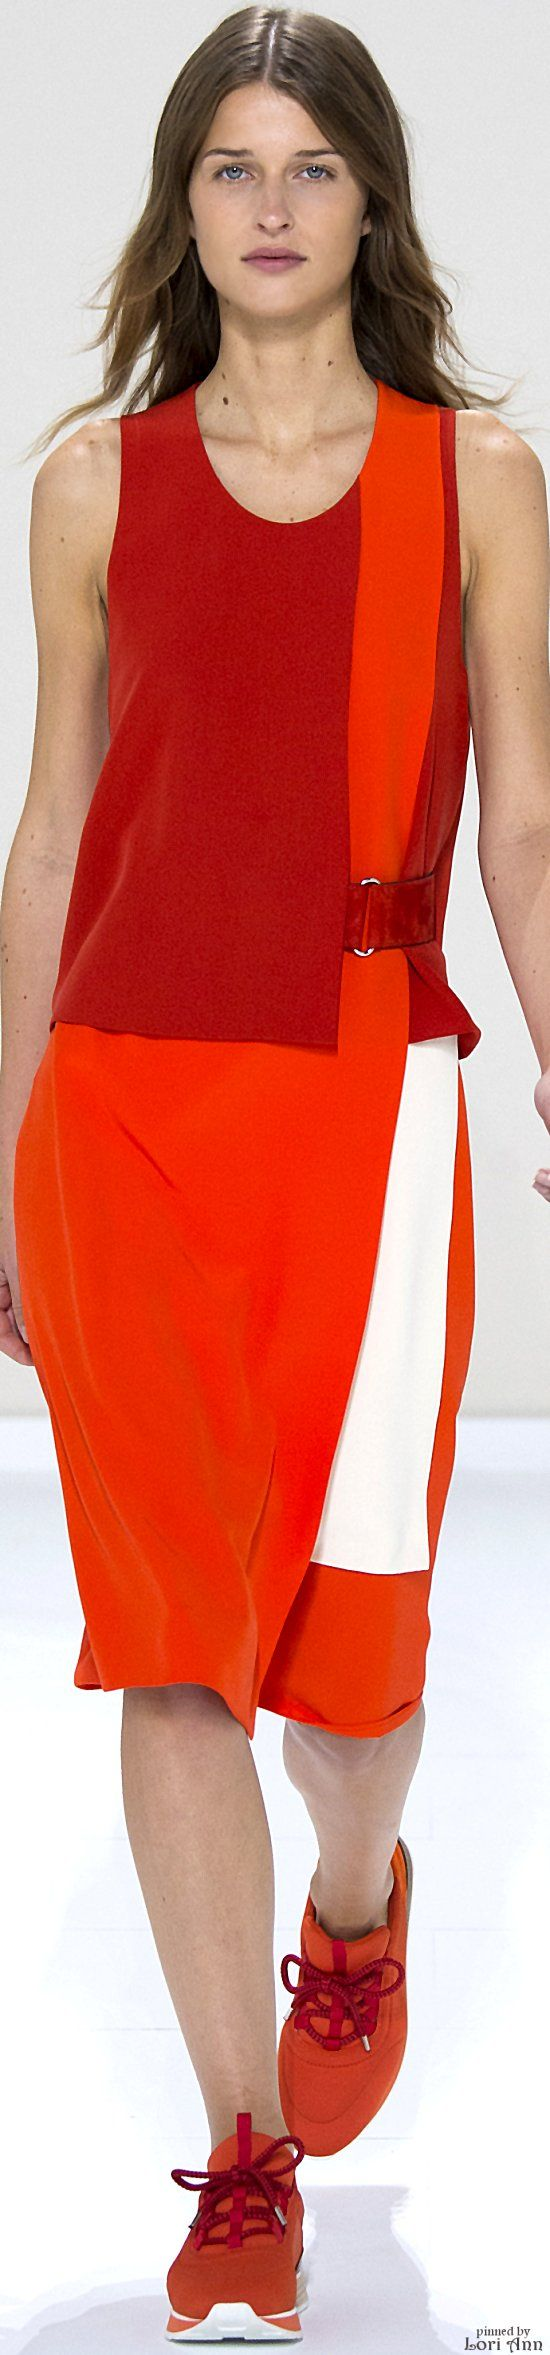 Hermès Spring 2016 RTW red orange dress women fashion outfit clothing style apparel @roressclothes closet ideas